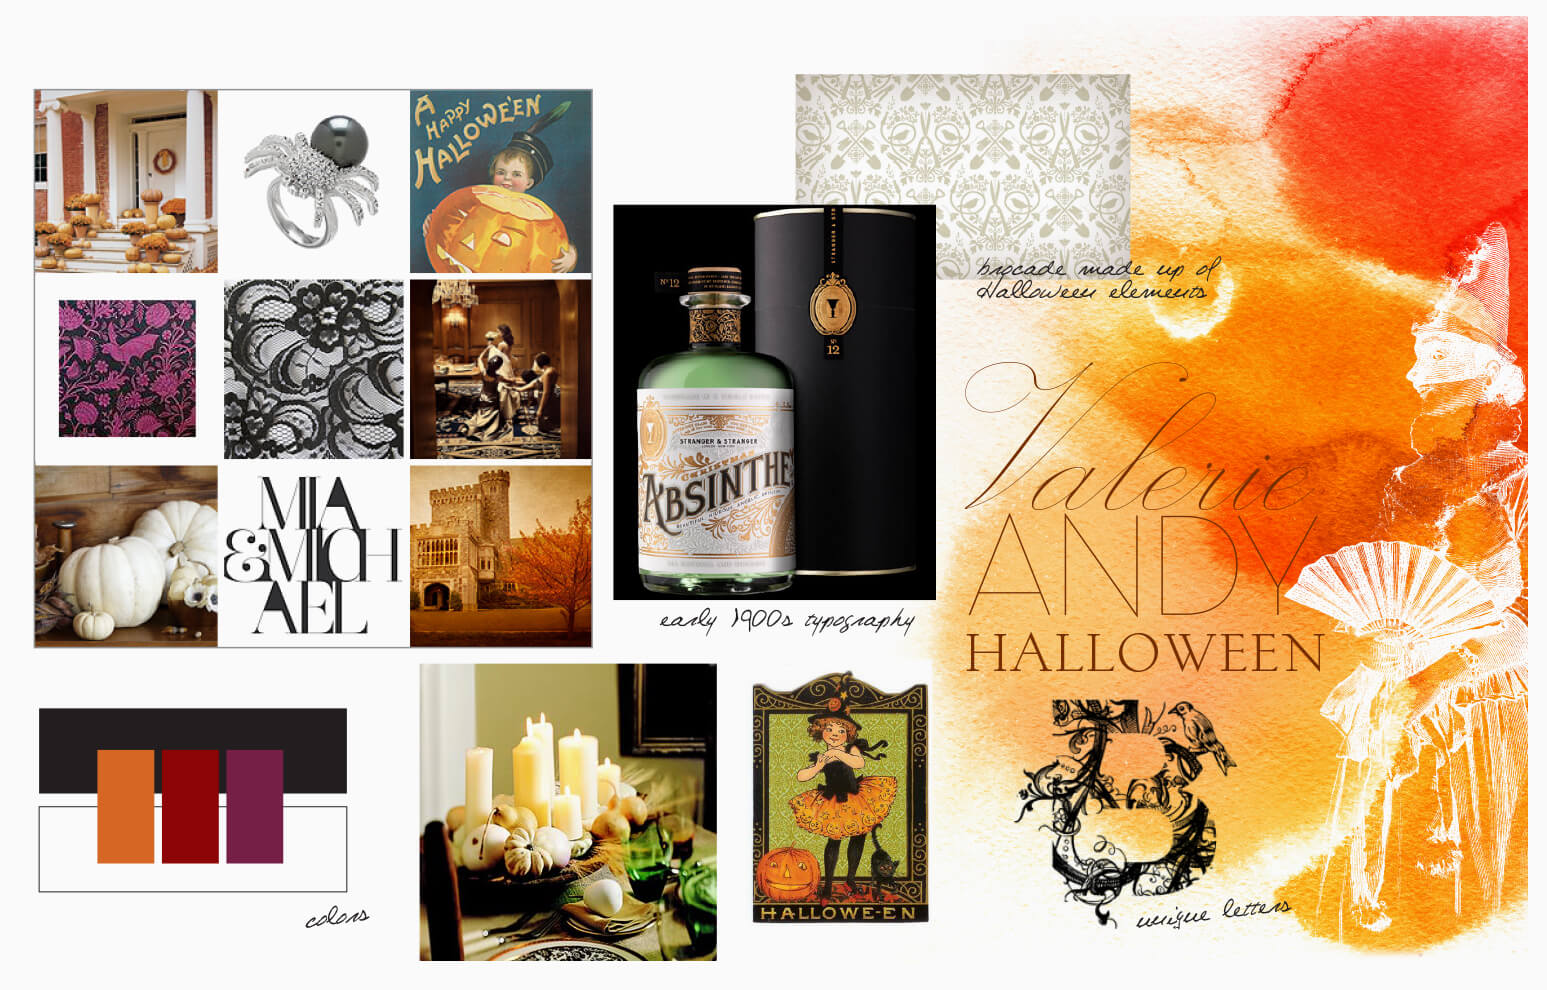 Absinthe packaging and spooky inspiration